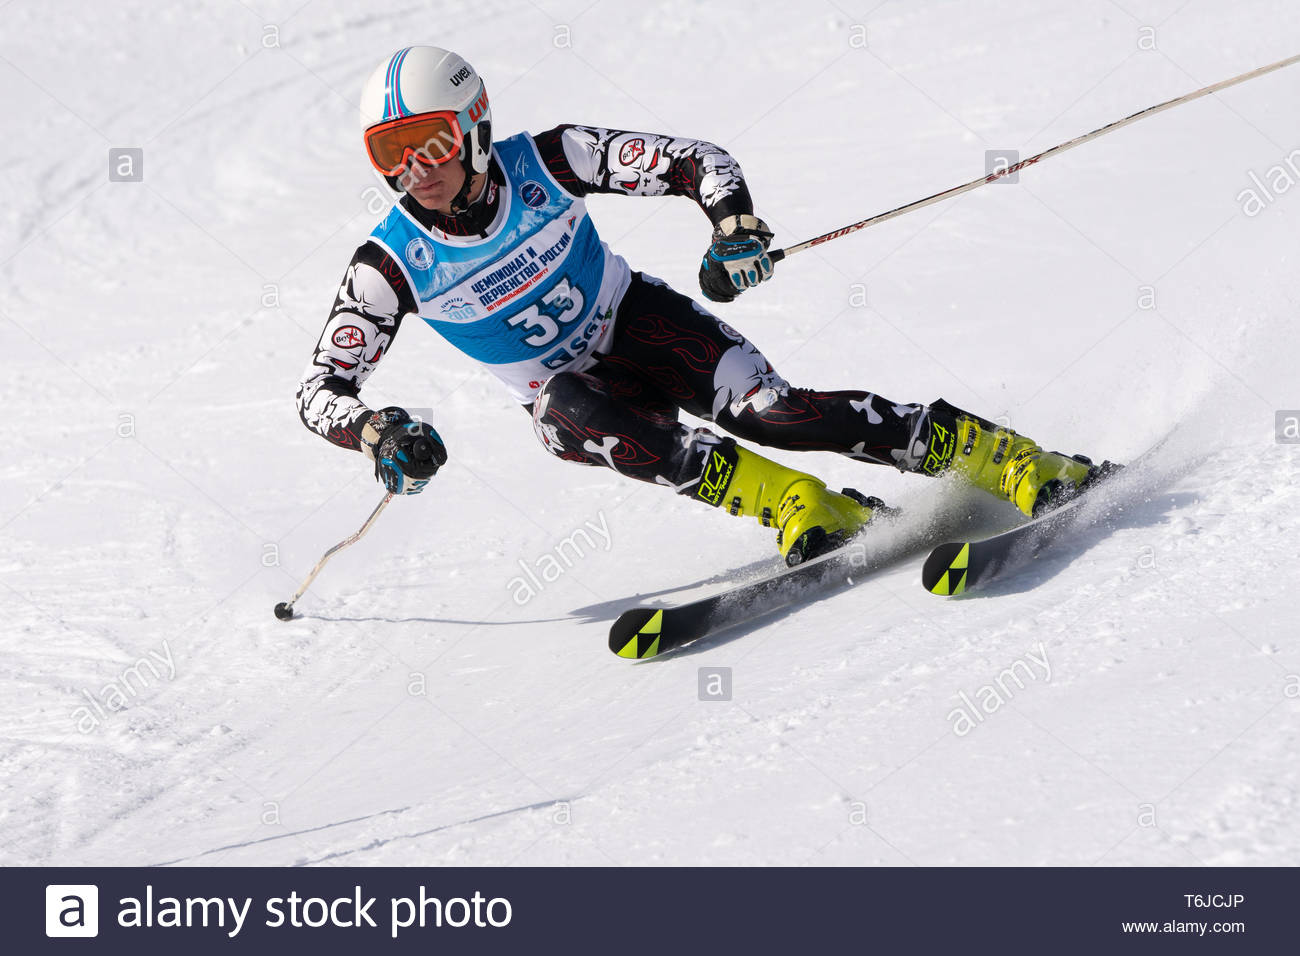 KAMCHATKA PENINSULA, RUSSIA - APR 1, 2019: Mountain skier Zhuravchenko Stepan (Krasnodar) skiing down slope. Russian Alpine Skiing Cup, International  - Stock Image